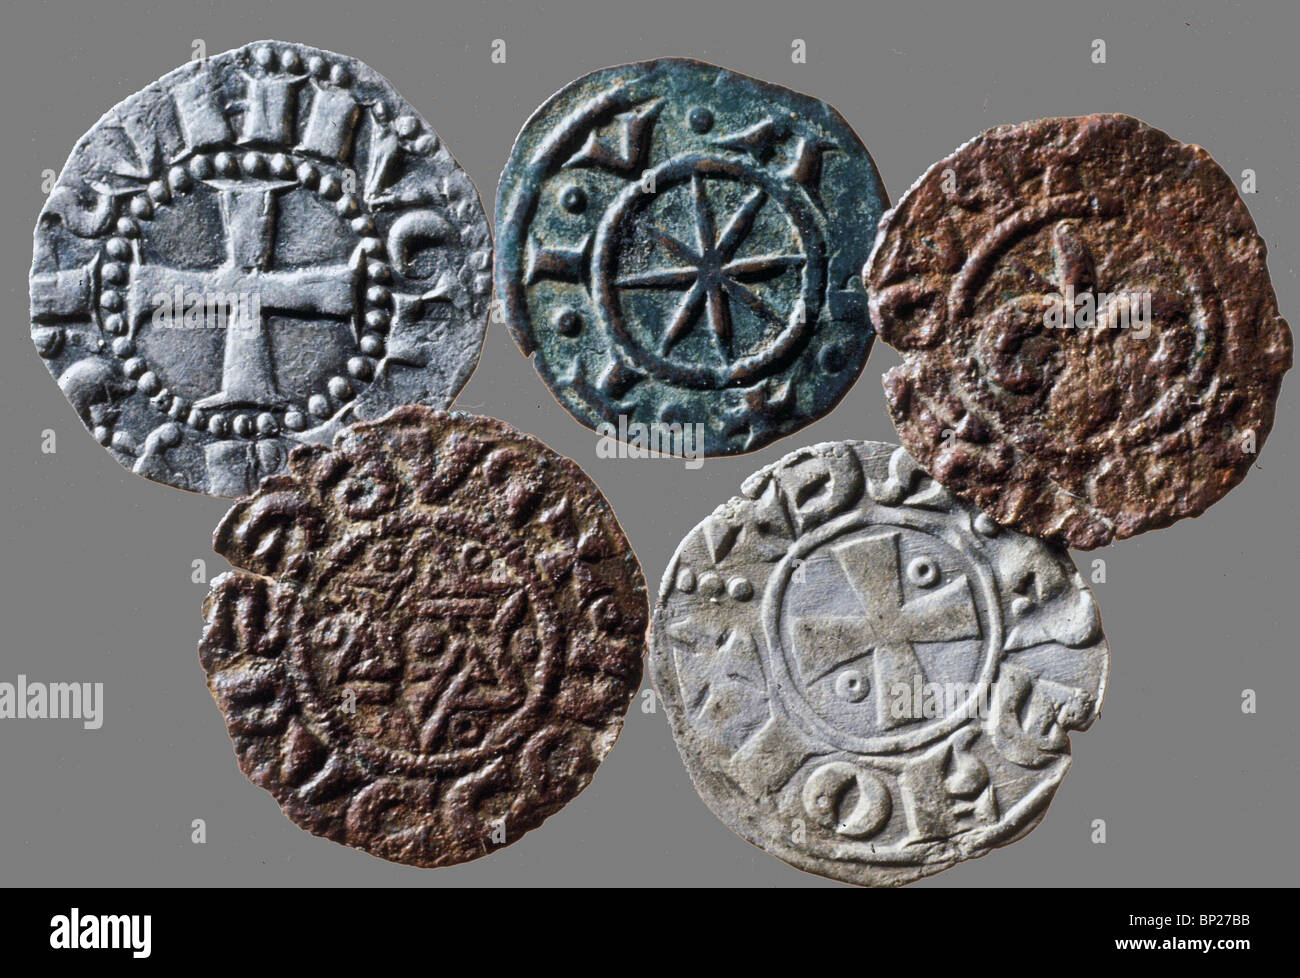 1631. CRUSADER PERIOD COINS ISSUED IN JERUSALEM WITH THE SYMBOLS OF THE DIFFERENT ORDERS - Stock Image